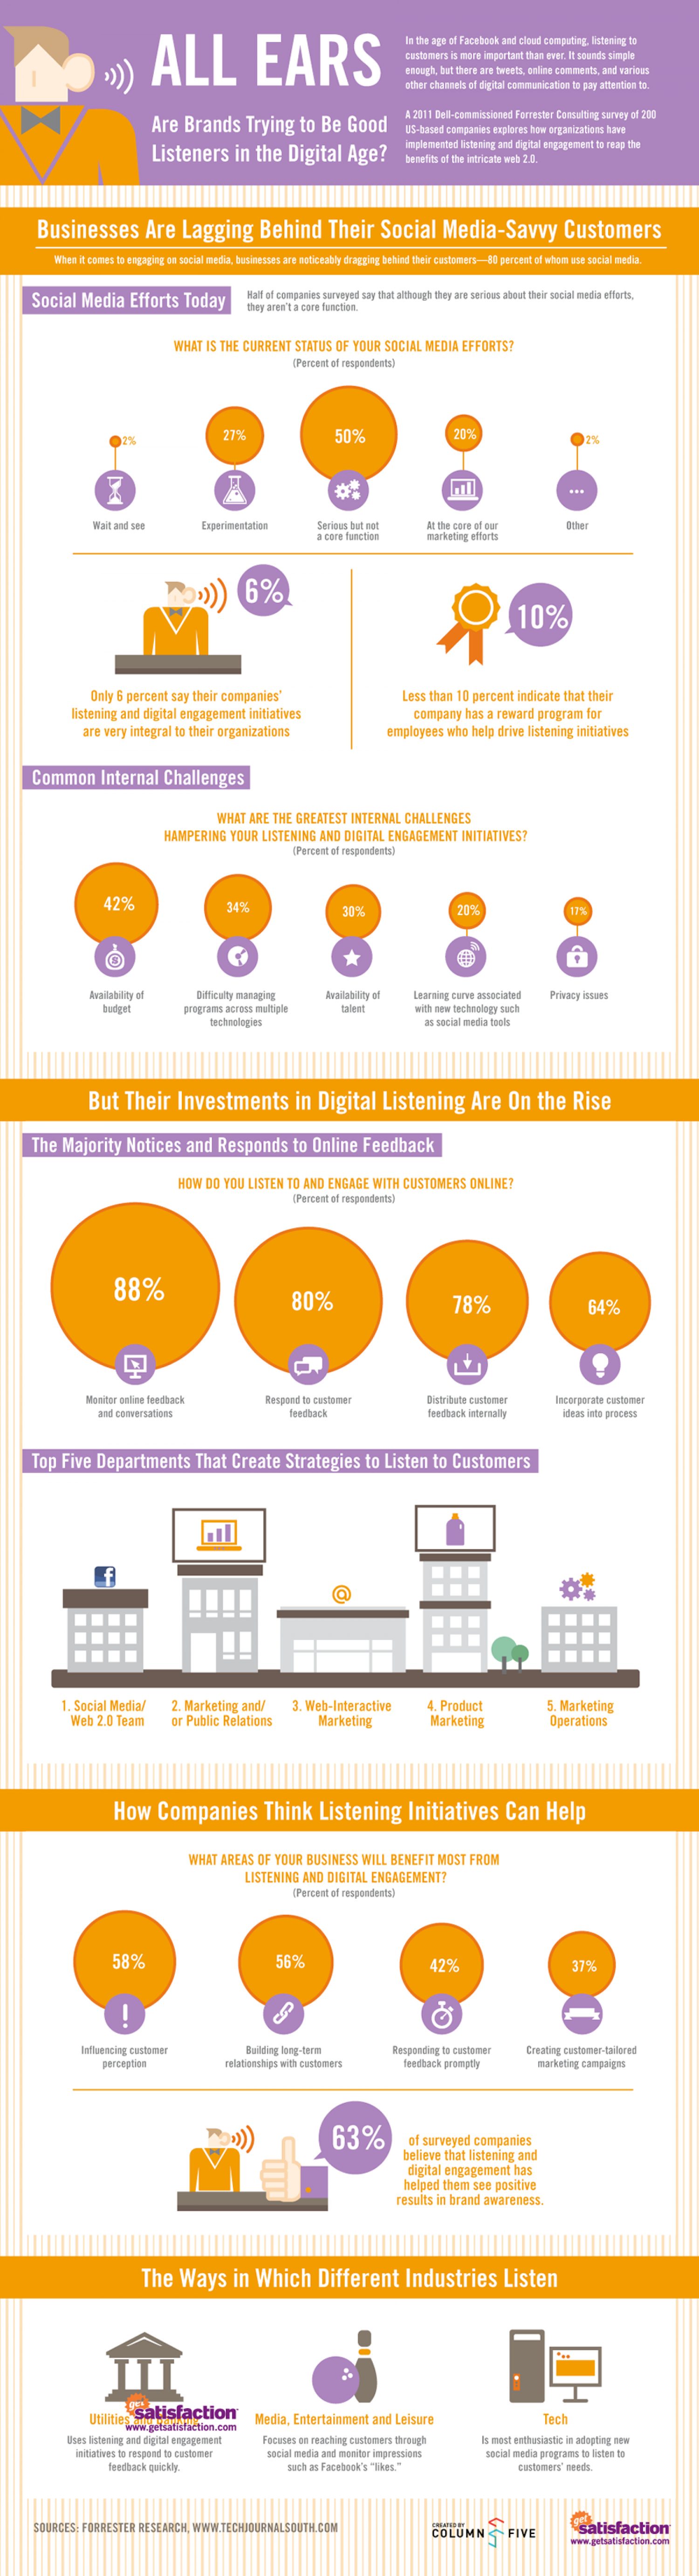 How Brands Listen Infographic